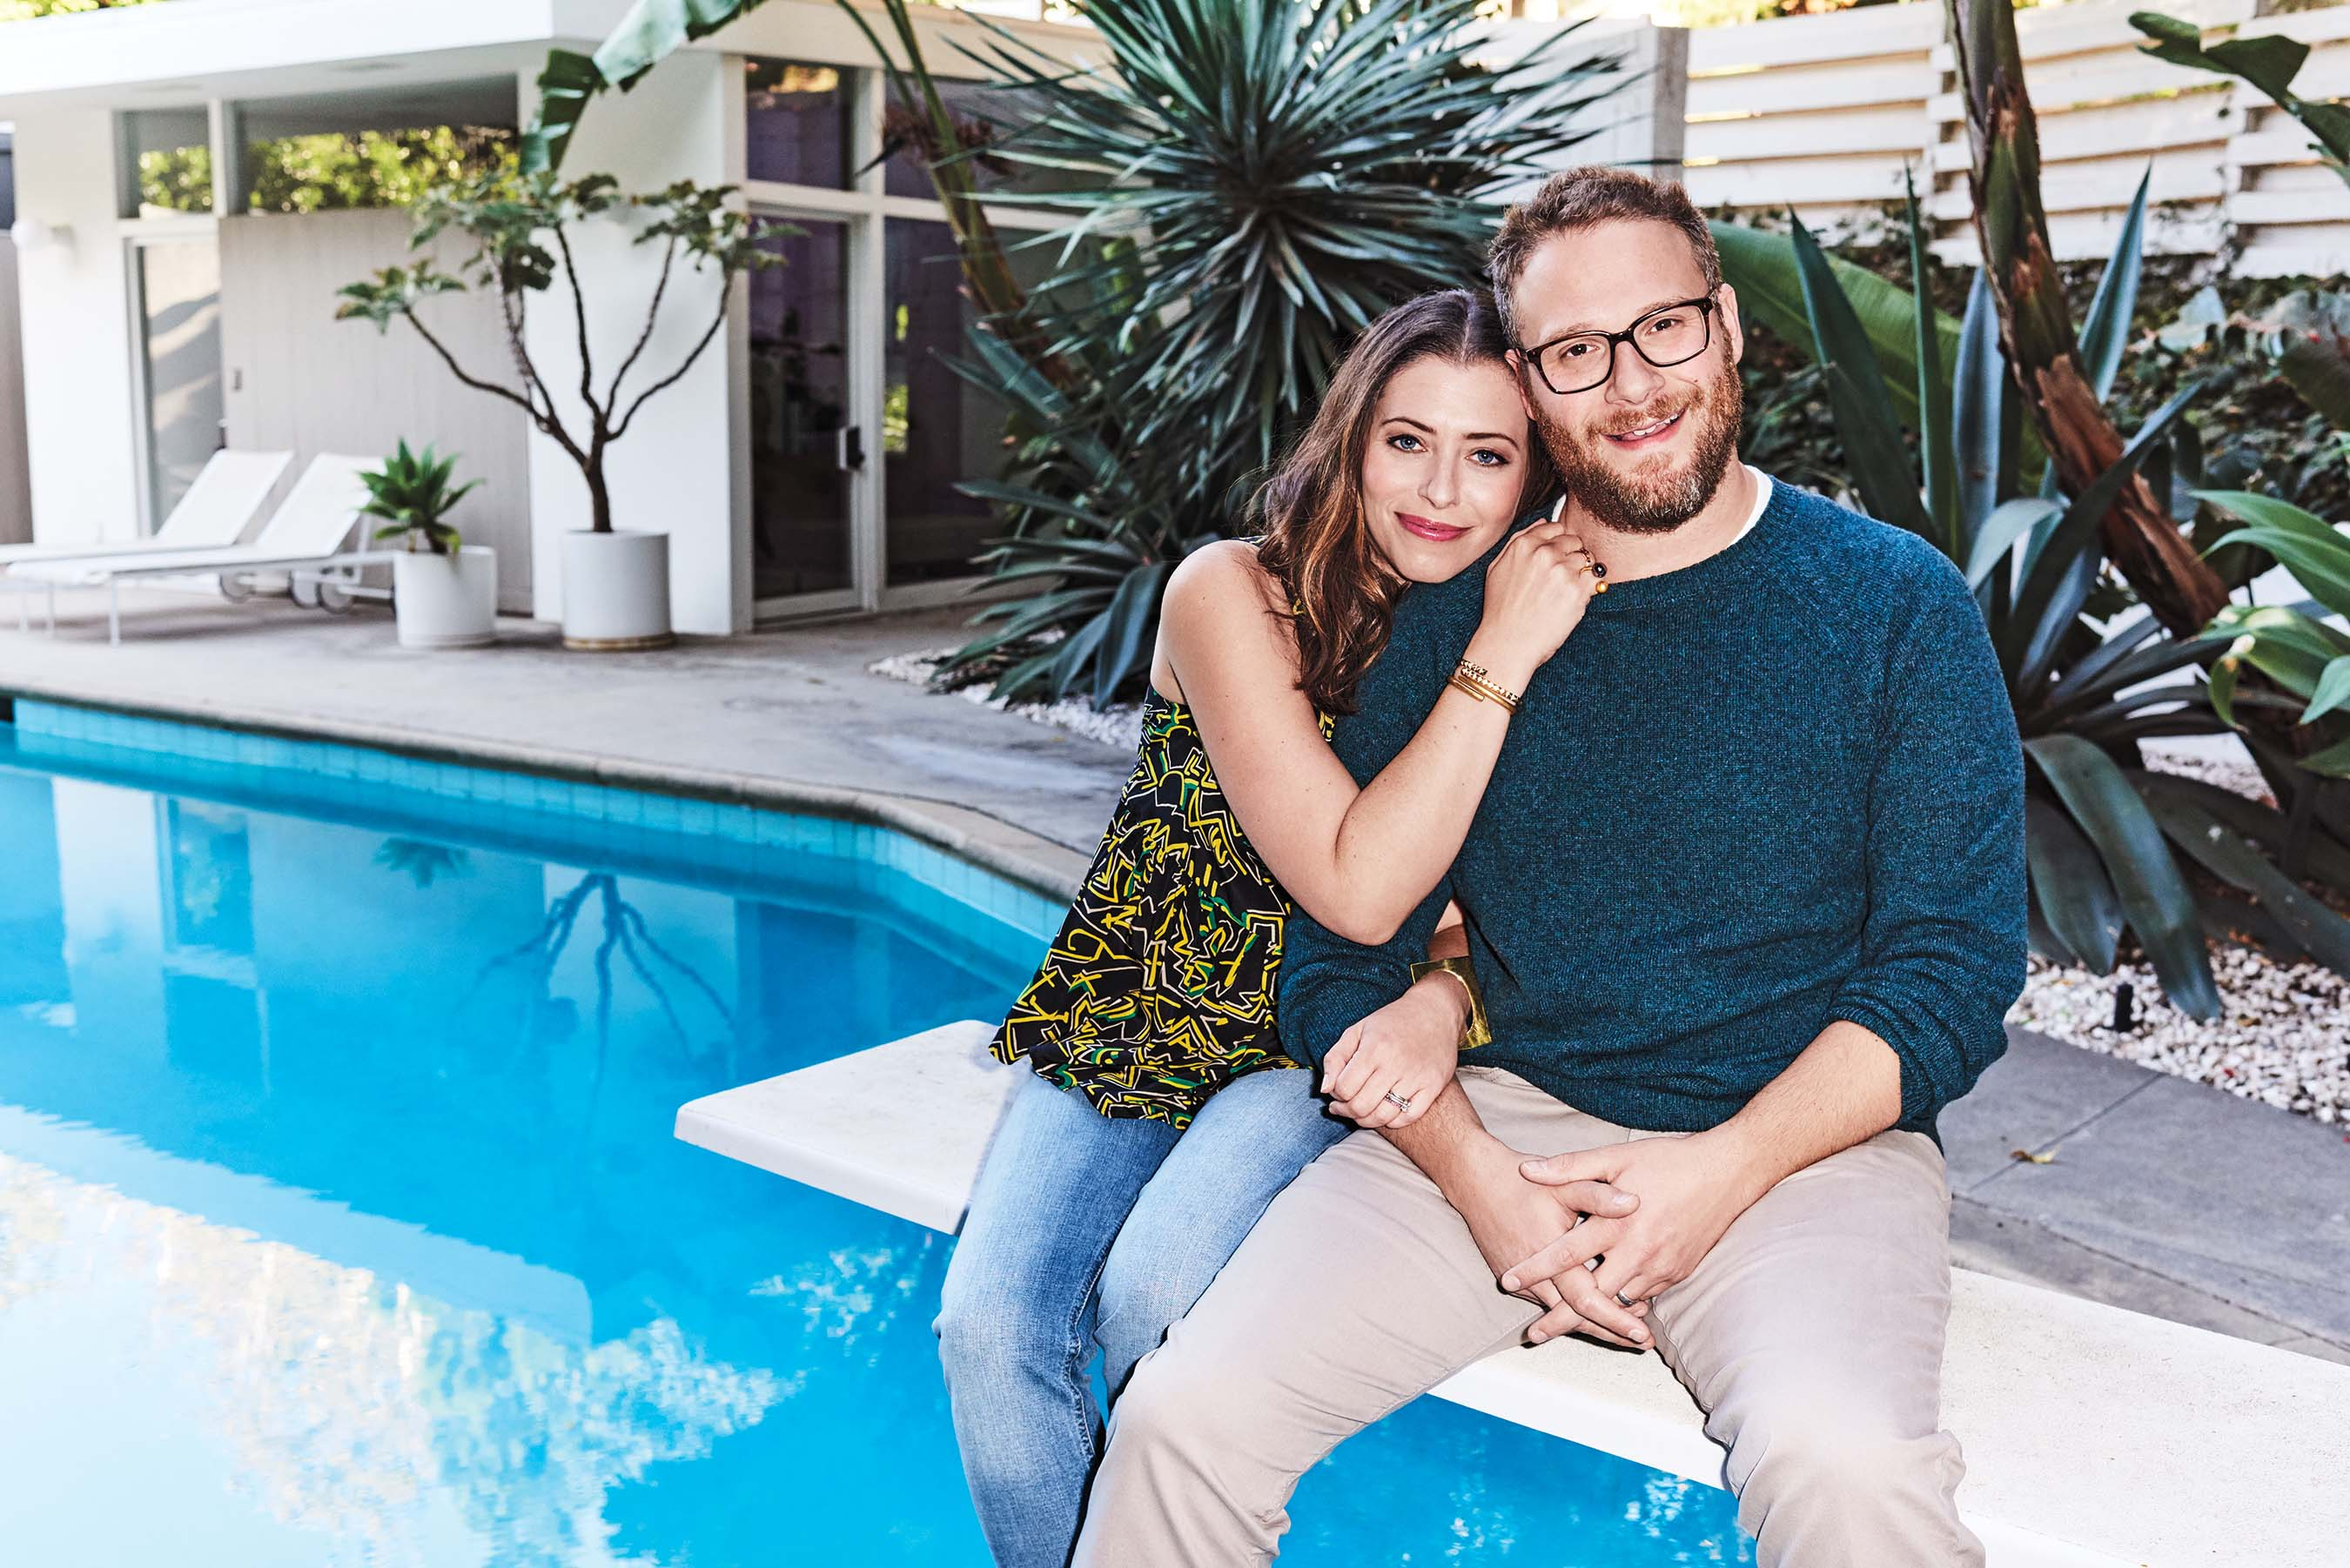 WebMD 2016 Health Hero People's Choice Award Recipients Seth Rogen and Lauren Miller Rogen